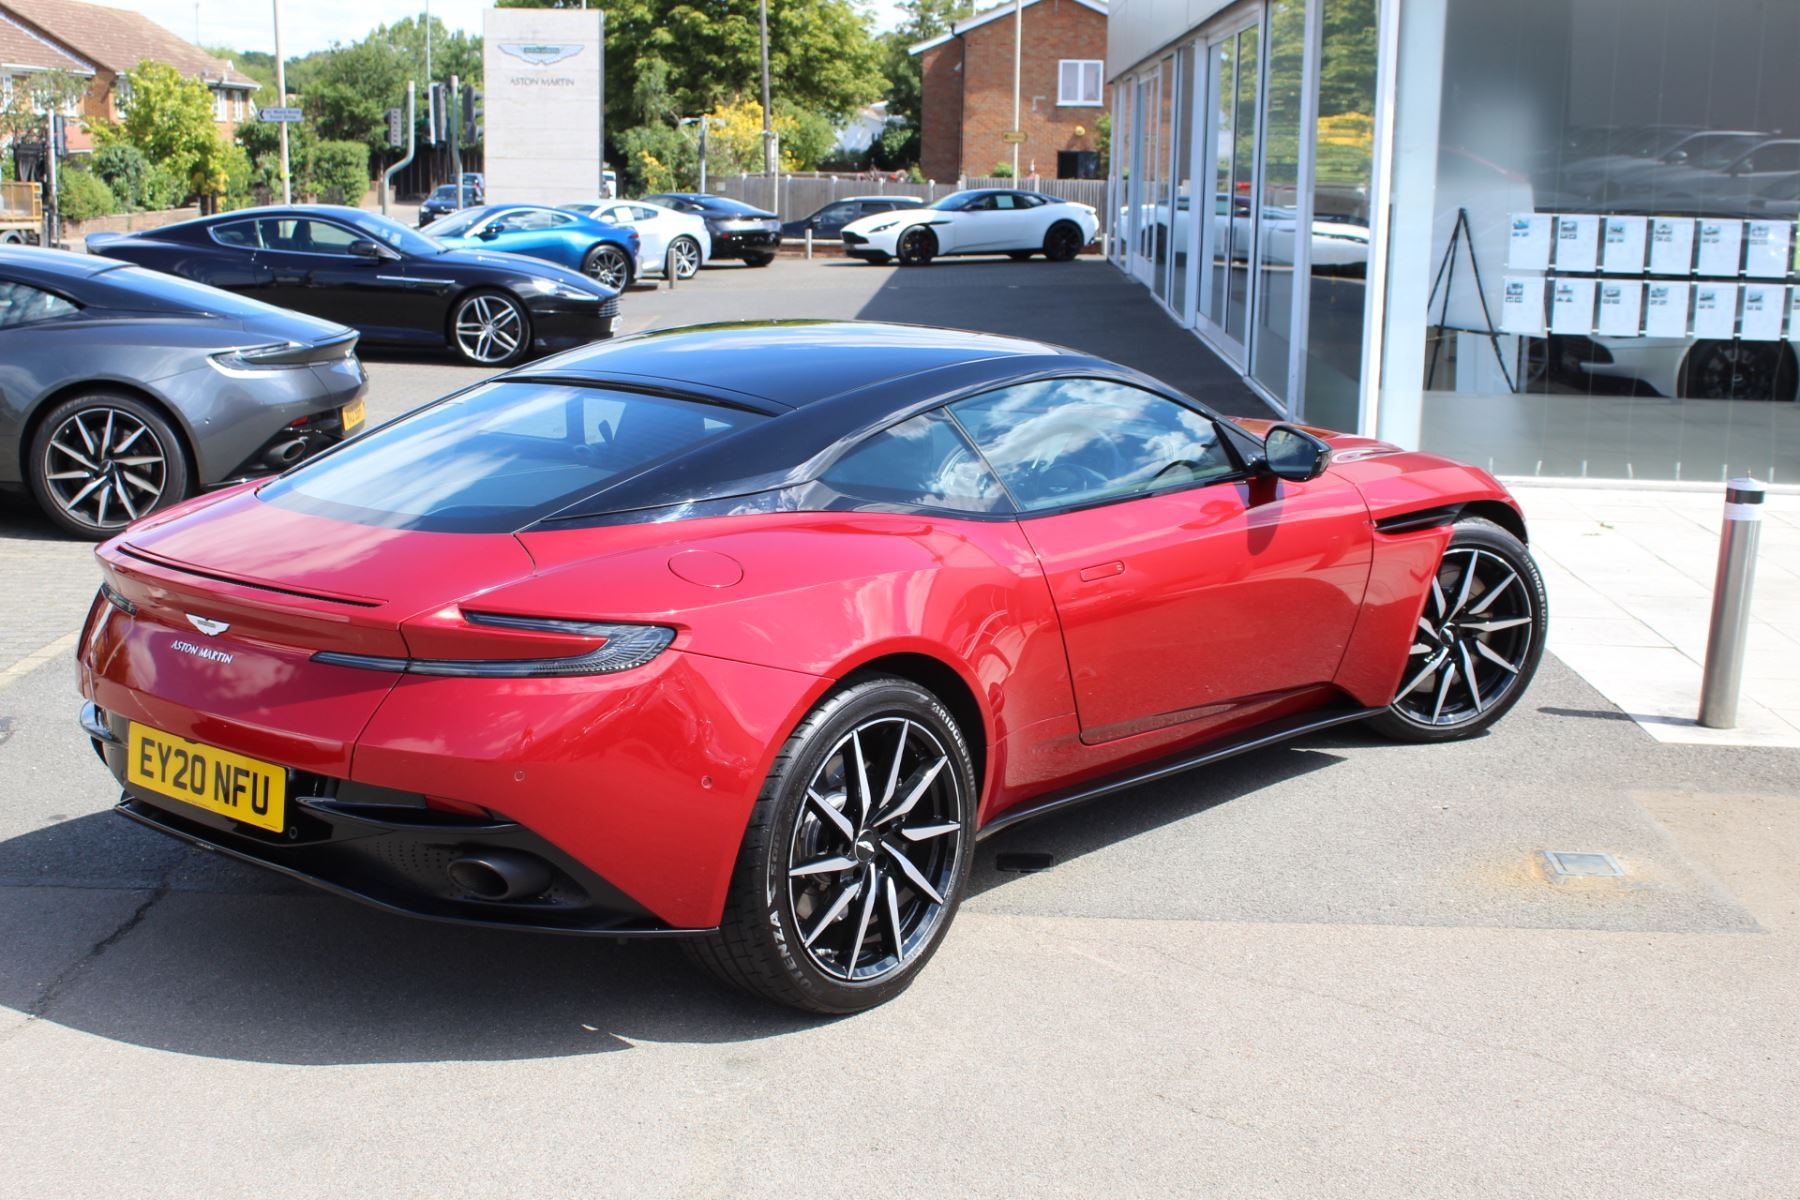 Aston Martin DB11 V8 2dr Touchtronic image 19